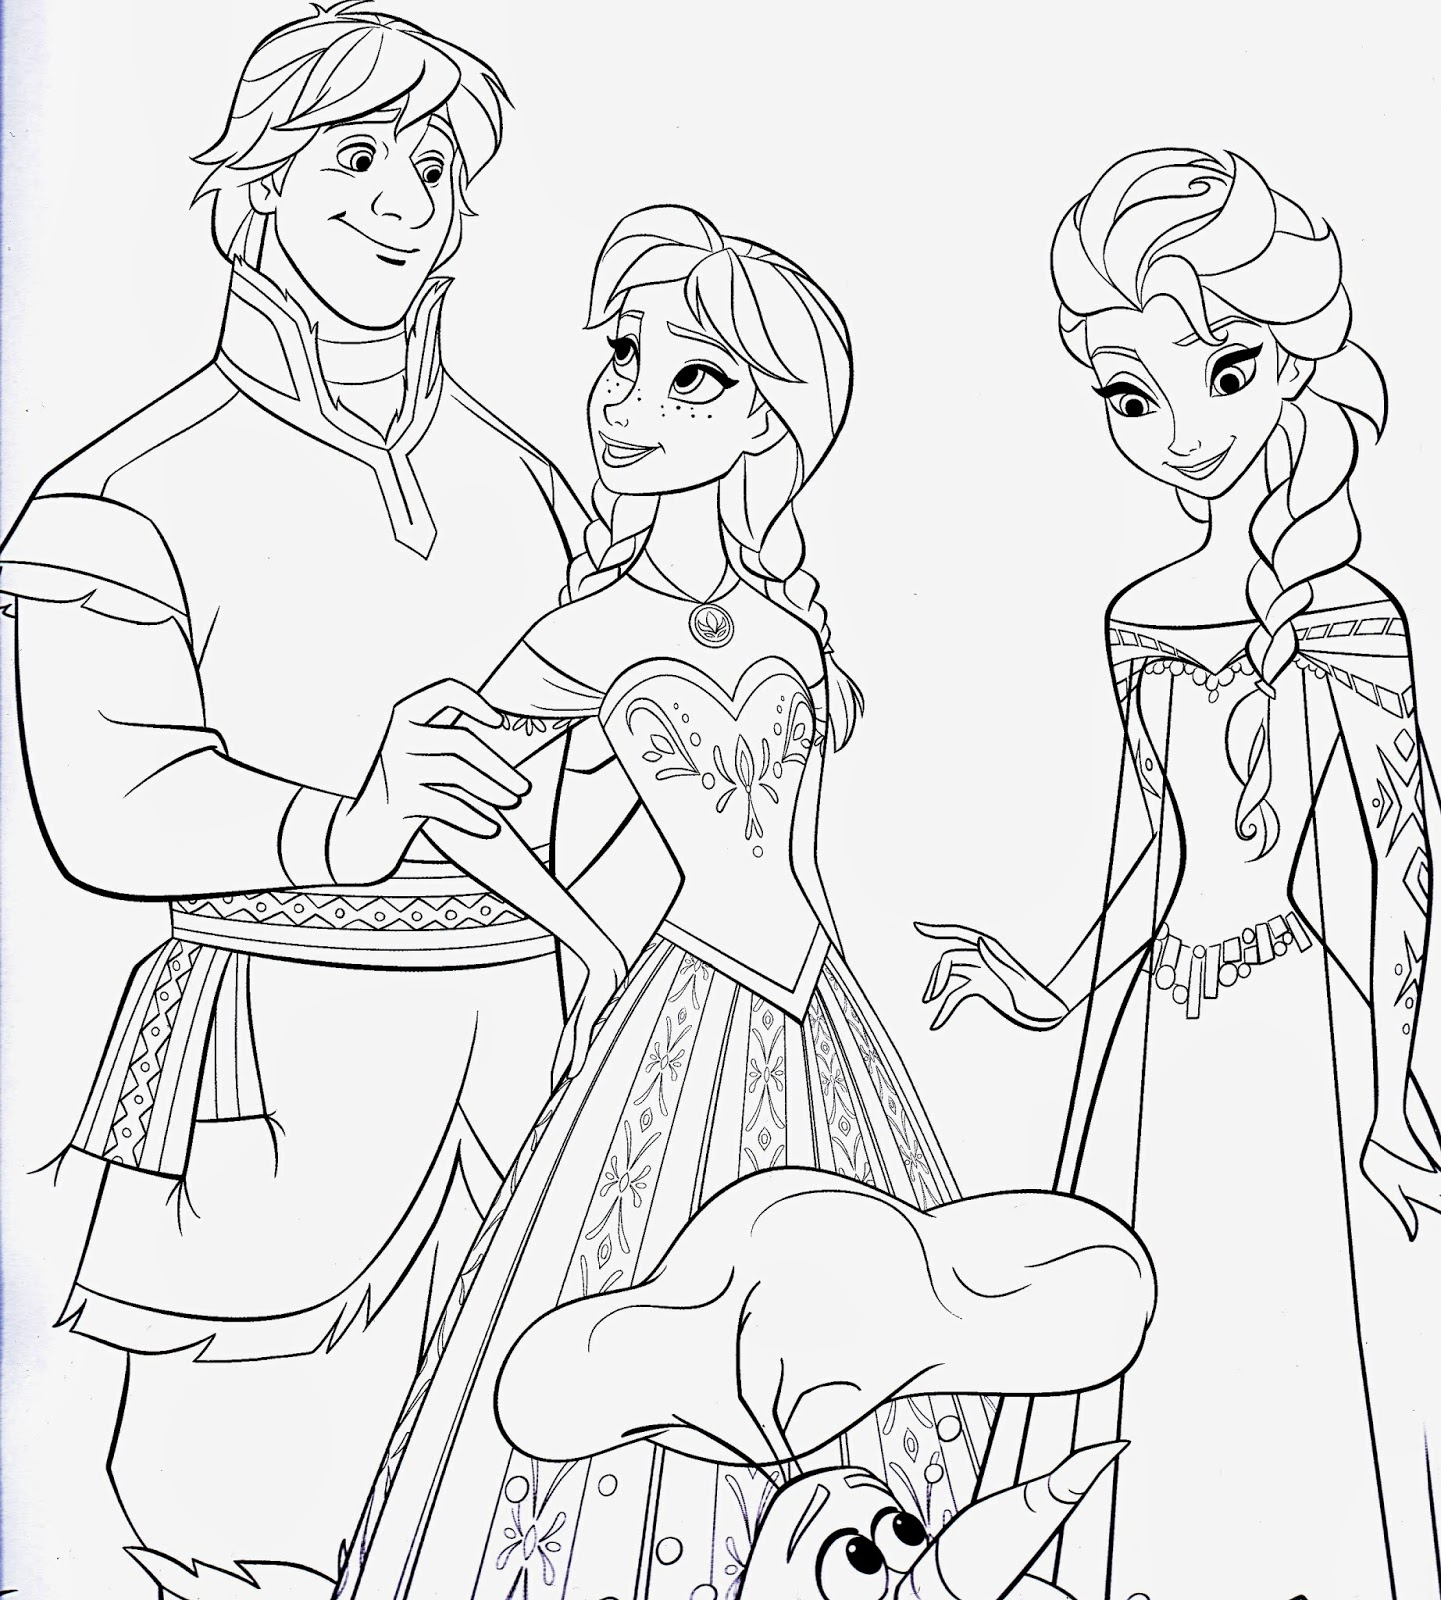 Disney Movie Princesses Quot Frozen Quot Printable Coloring Pages Frozen Princess Coloring Page Free Coloring Sheets